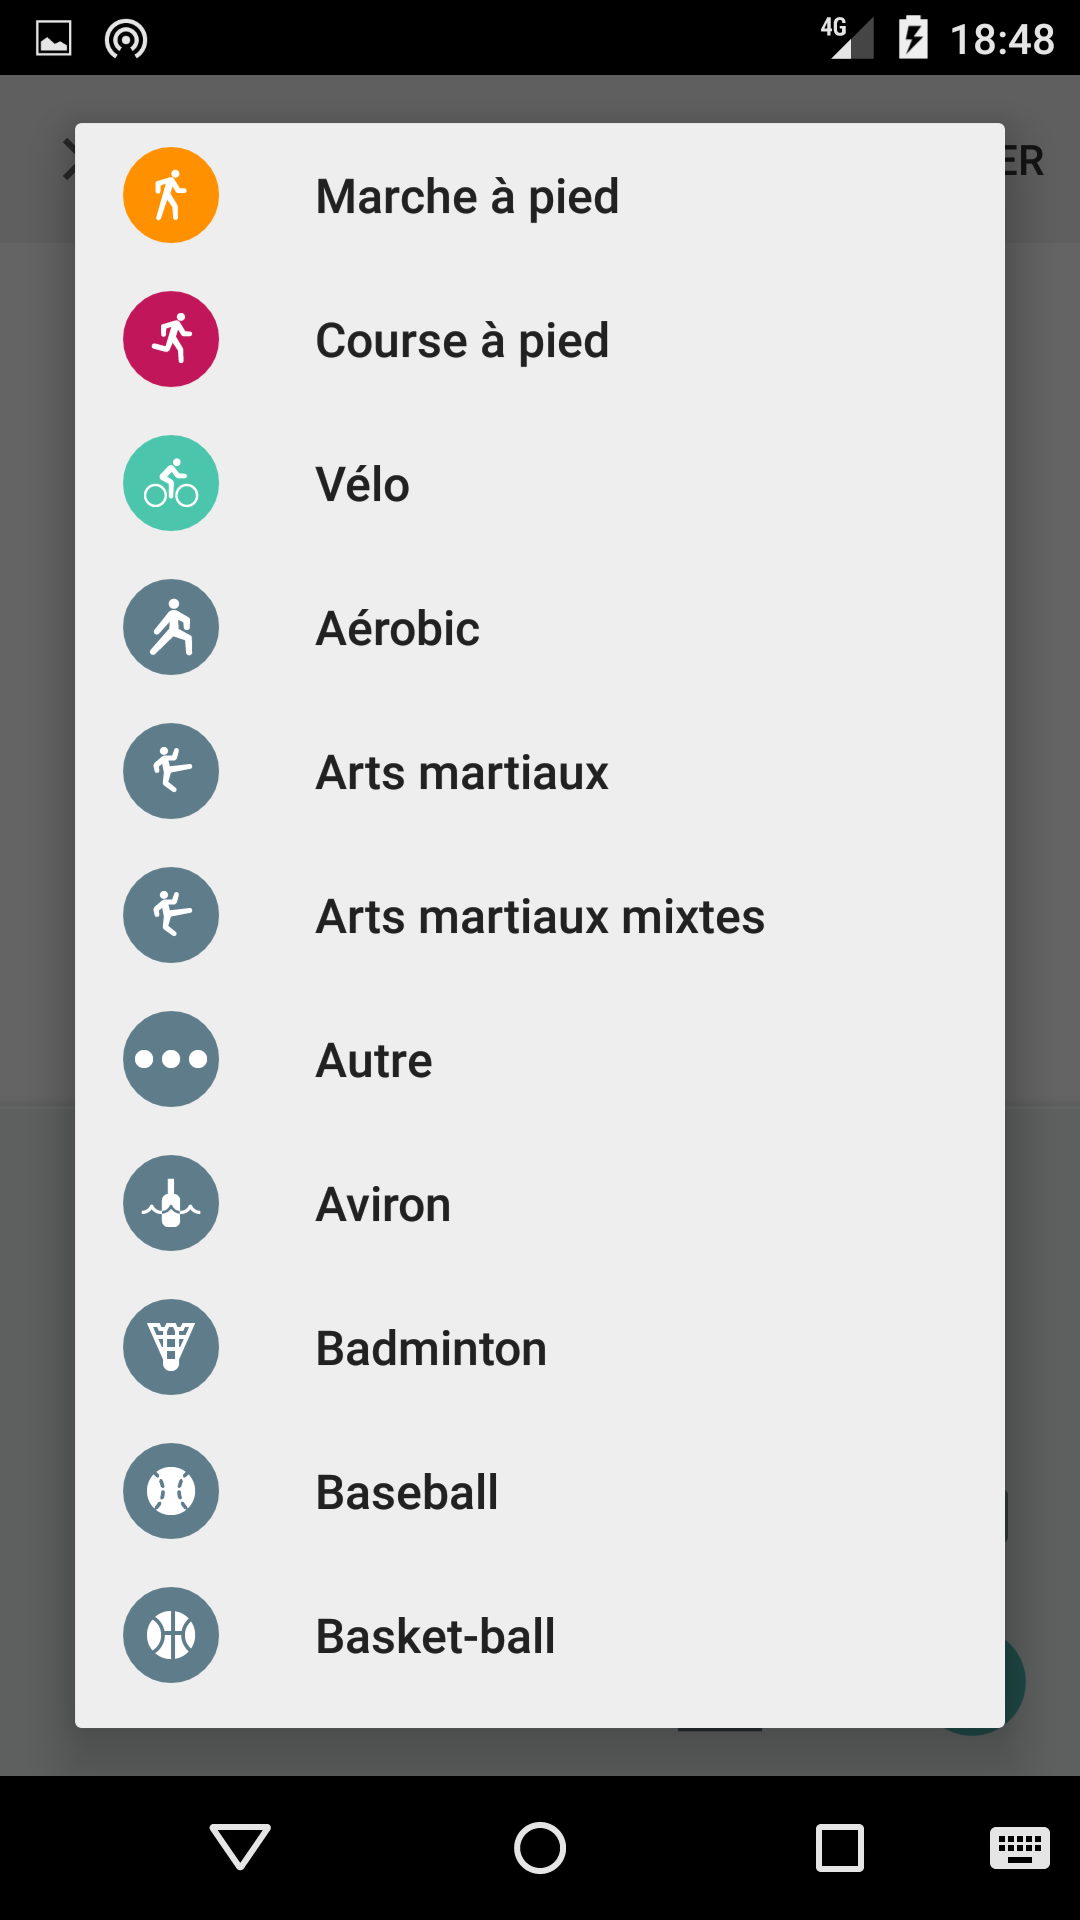 Screenshot 2014 12 18 18 48 15 - Android - Une semaine avec Google Fit